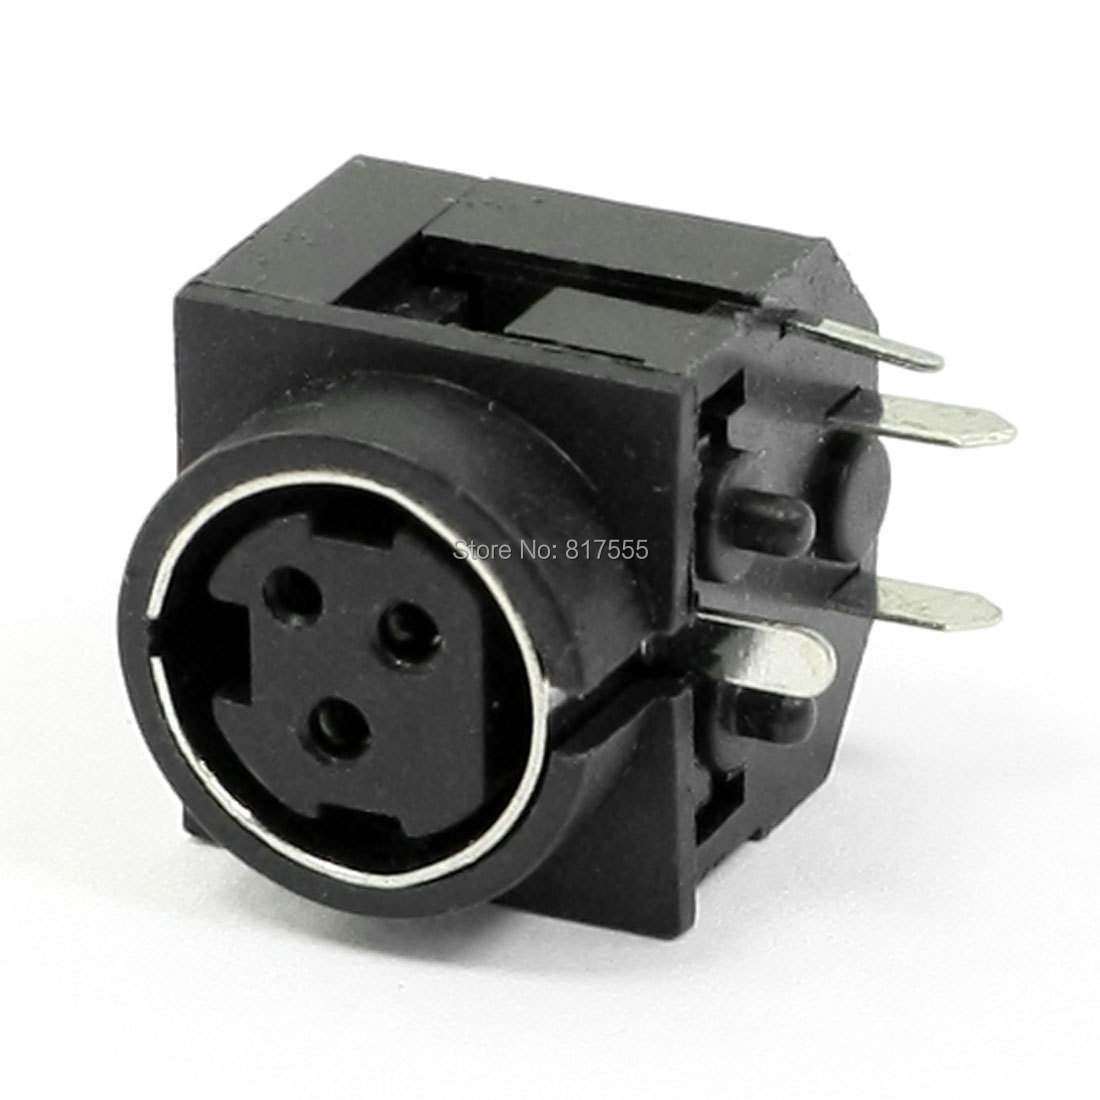 Computer Component Din 3 Pin Female PCB Mount Mini Sockets Connectors Head Discount 70(China (Mainland))